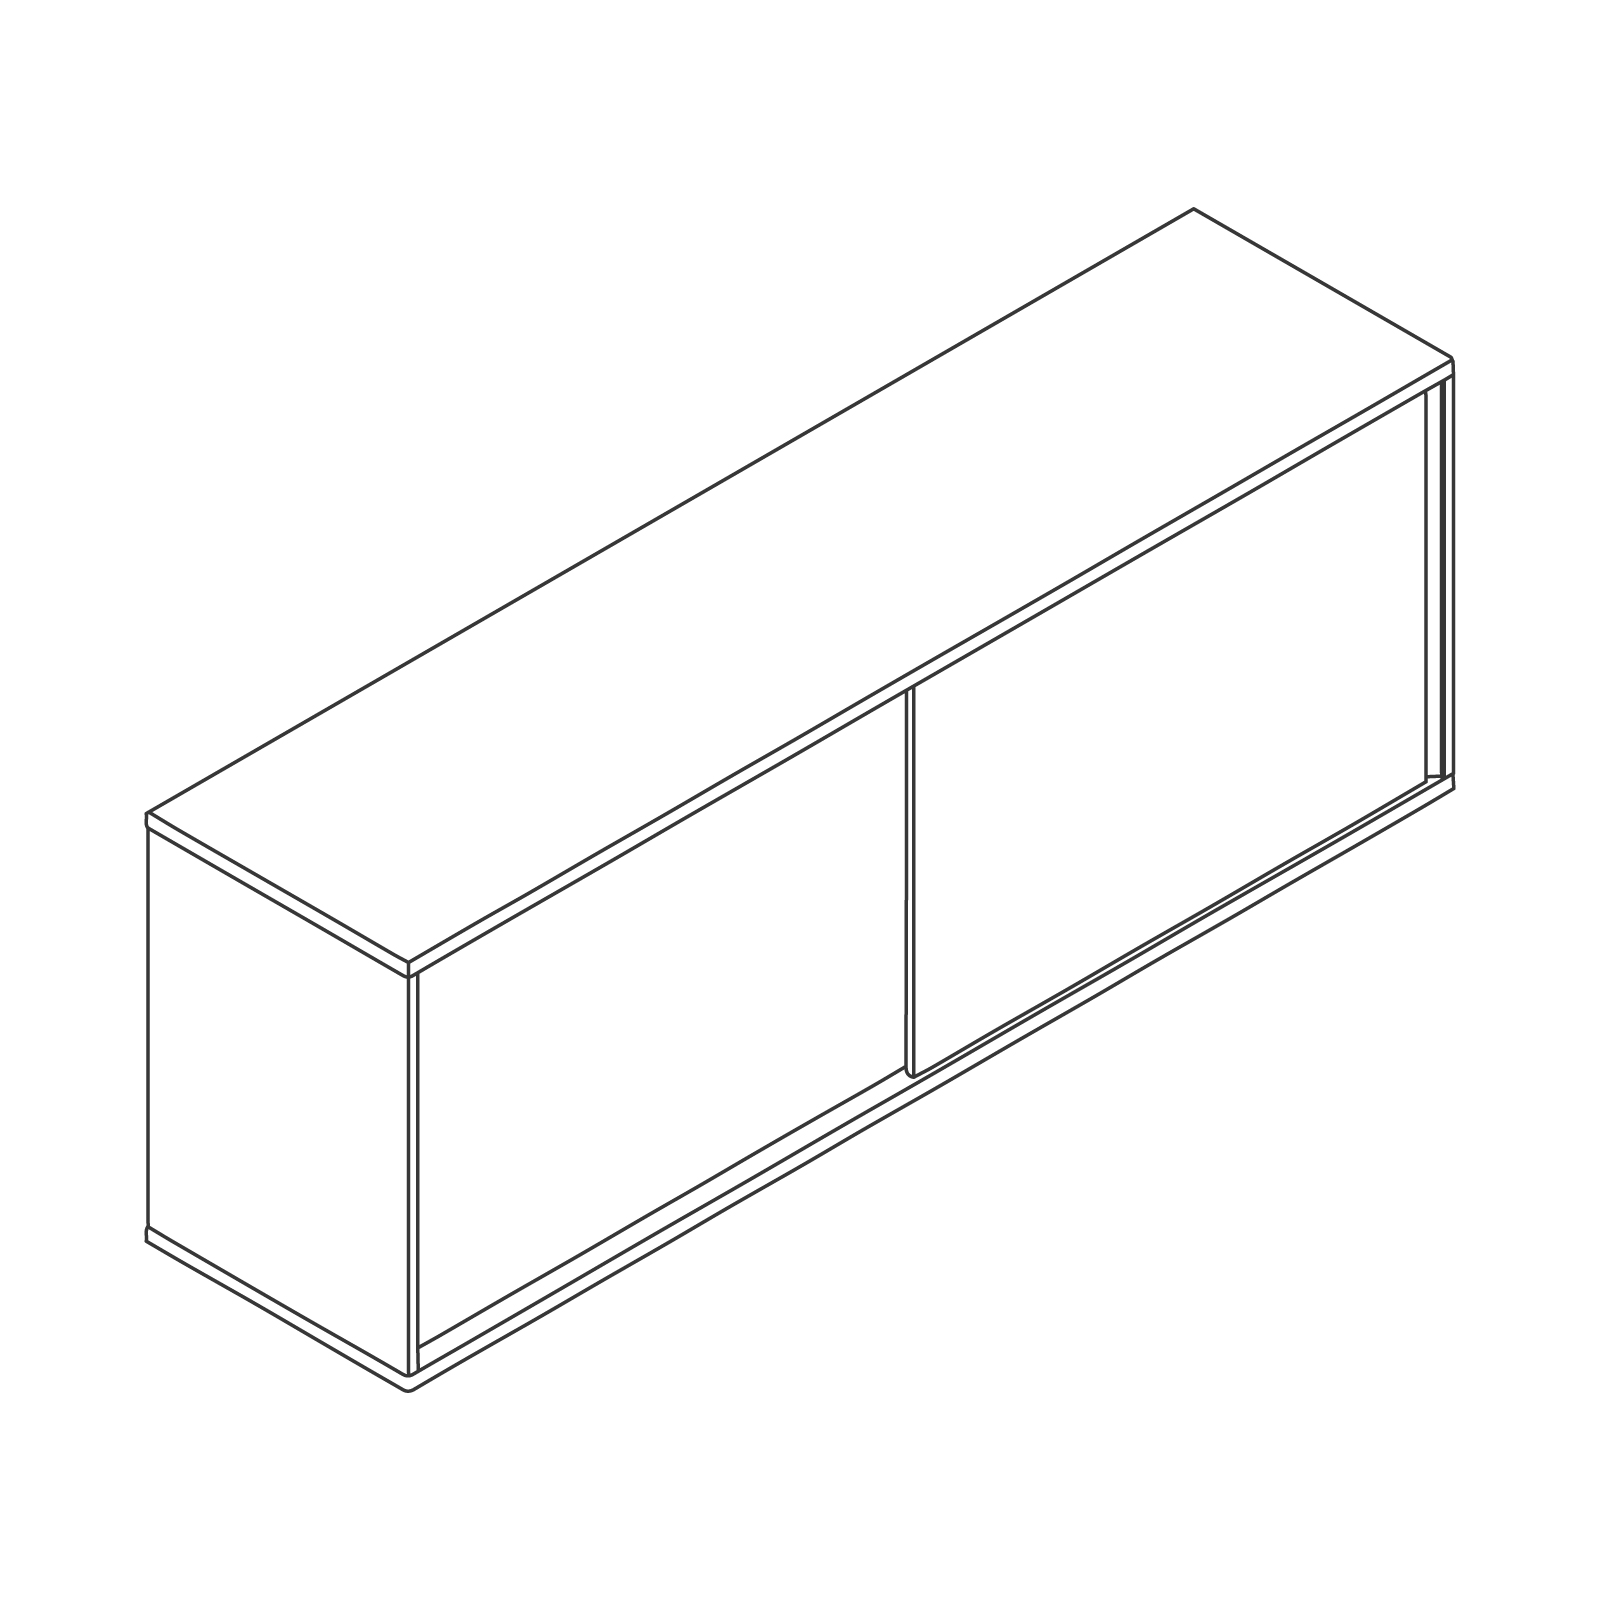 A line drawing of Softbox Storage Credenza–Large.